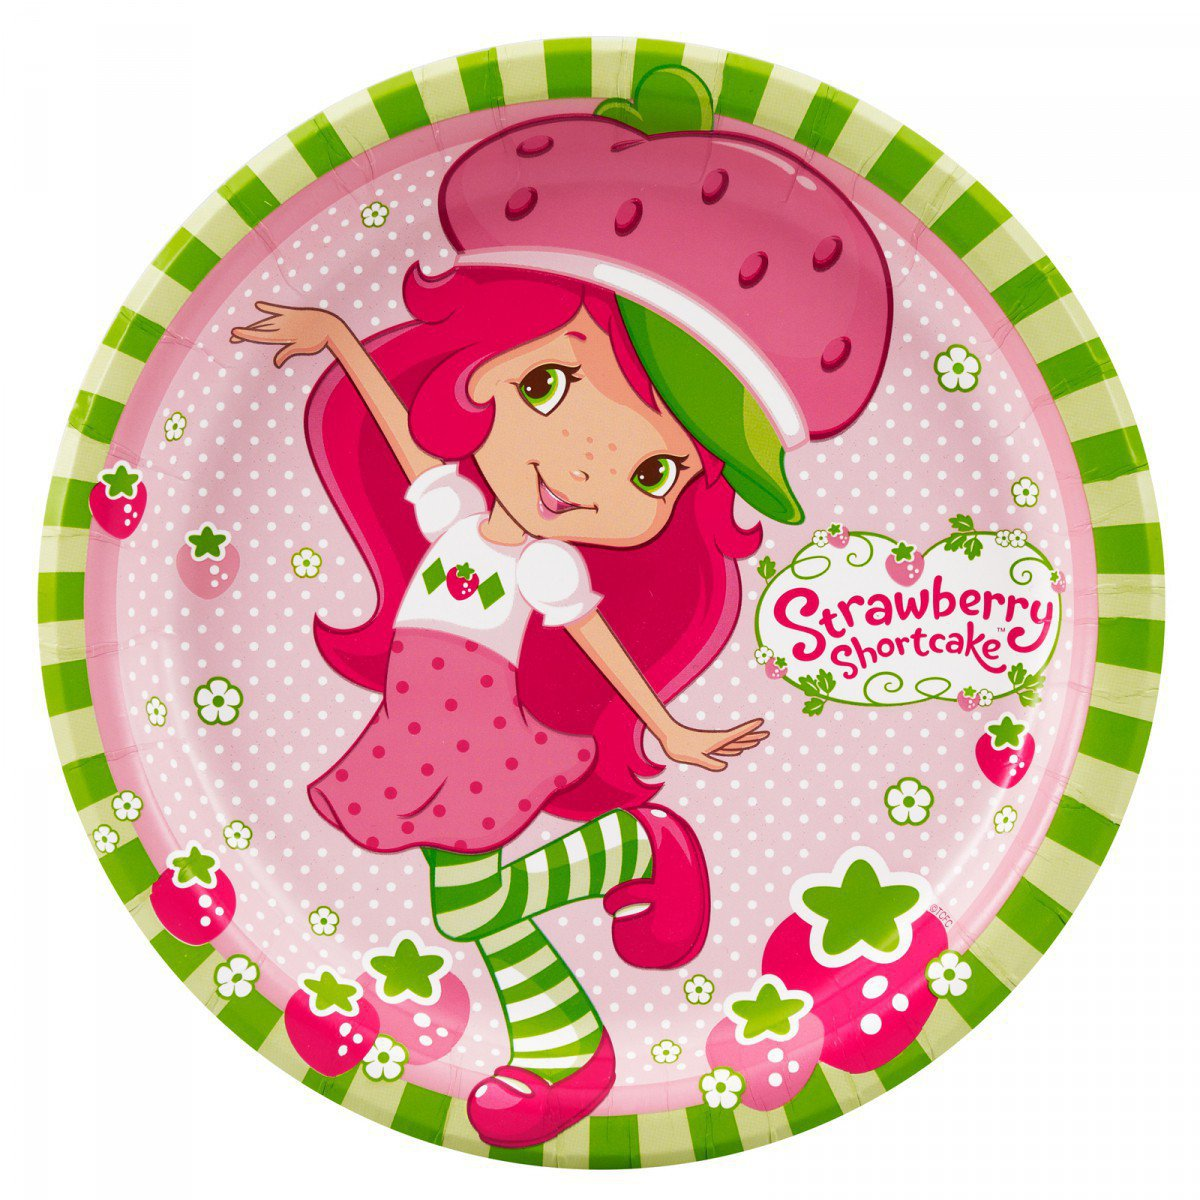 strawberryshortcakefreeprintablebirthdayinvitations2015jpeg